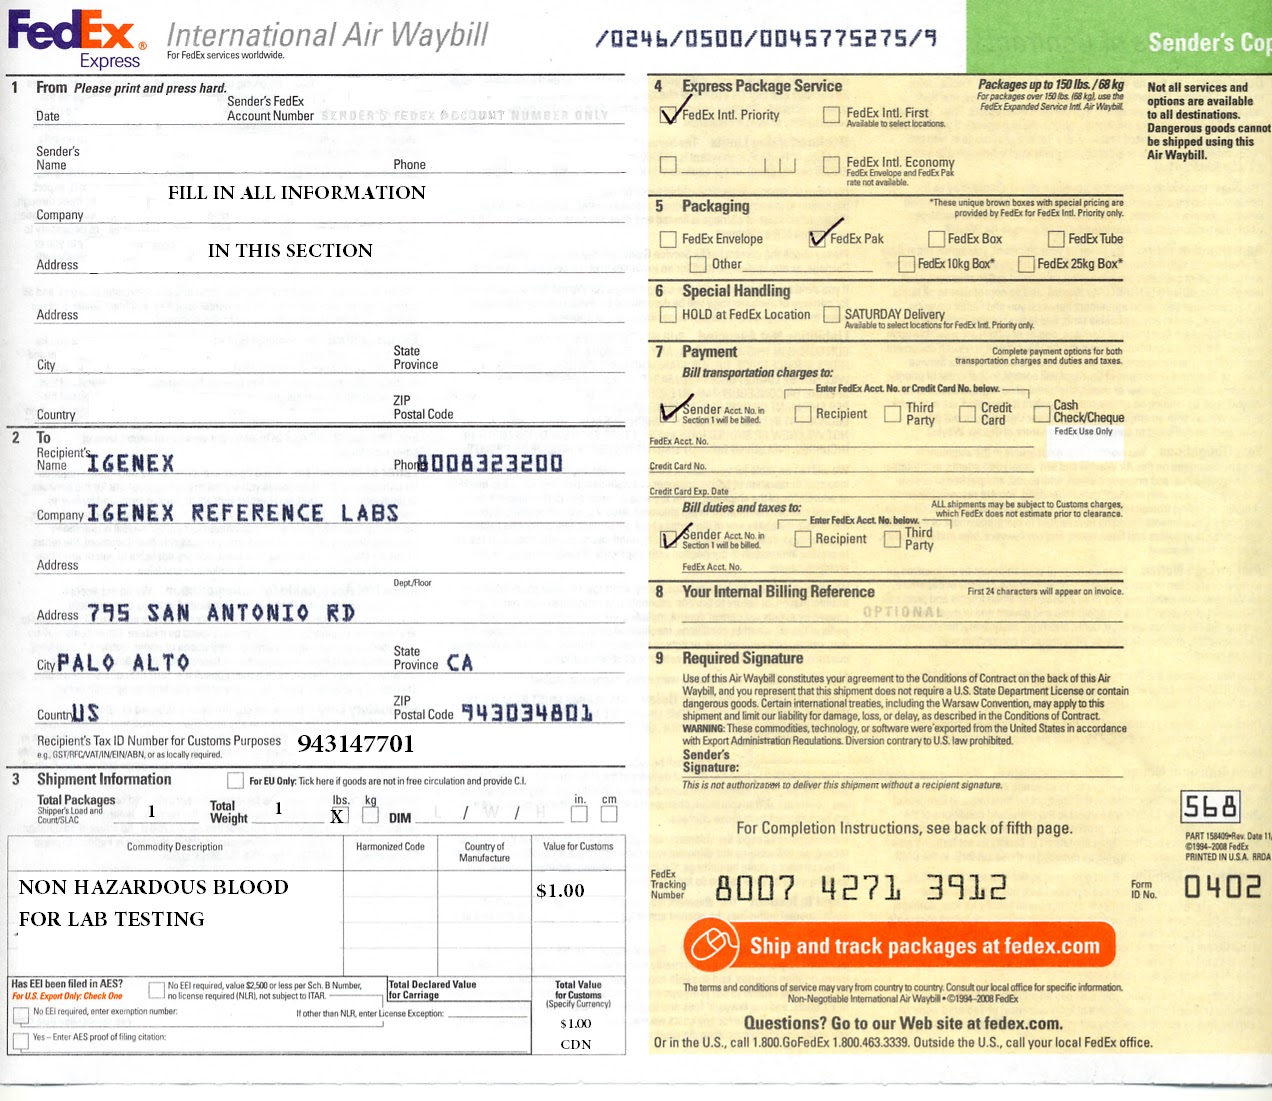 Bill Of Lading Shipping Tools Bandstra Transportation Printable Fedex Waybill Pokemon Go Search For Tips